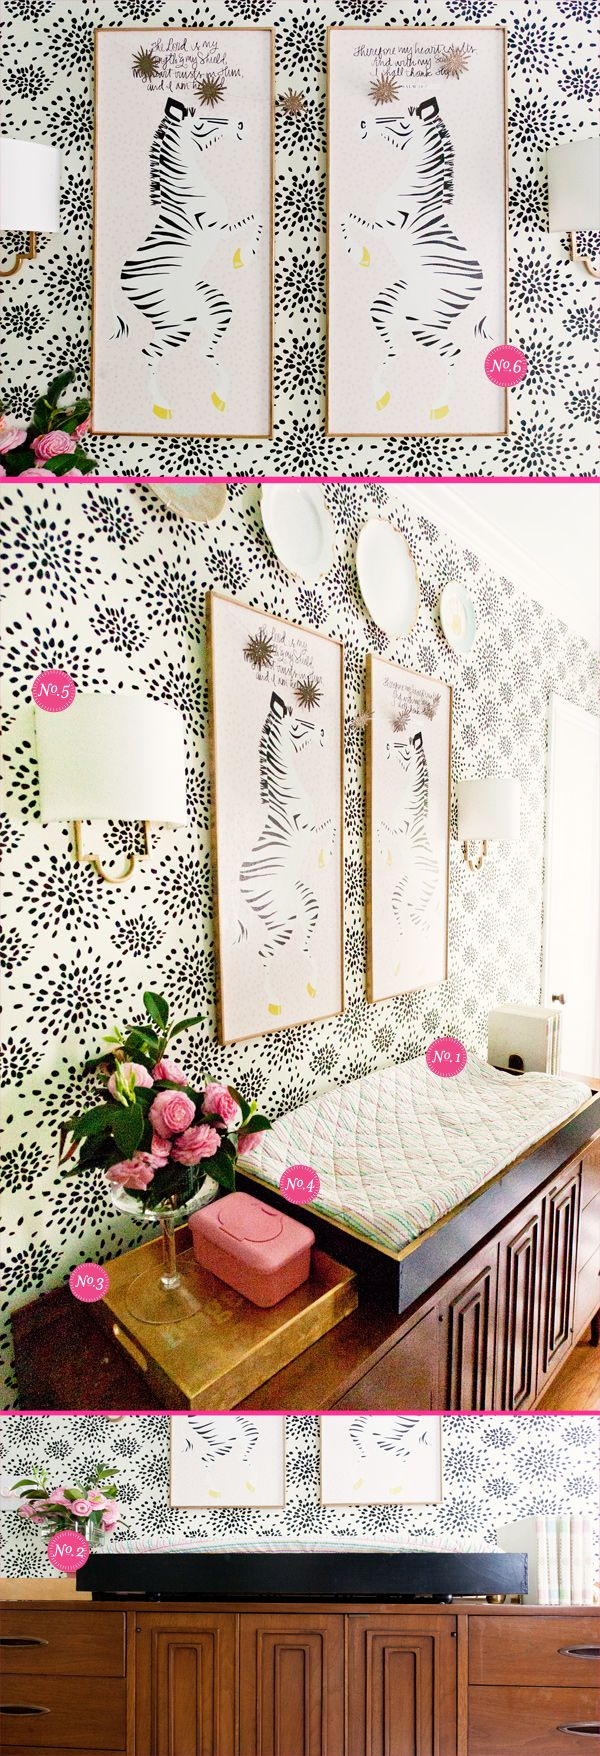 Wallpapered nursery changing table Lay Baby Lay - Nursery Inspiration & Delights